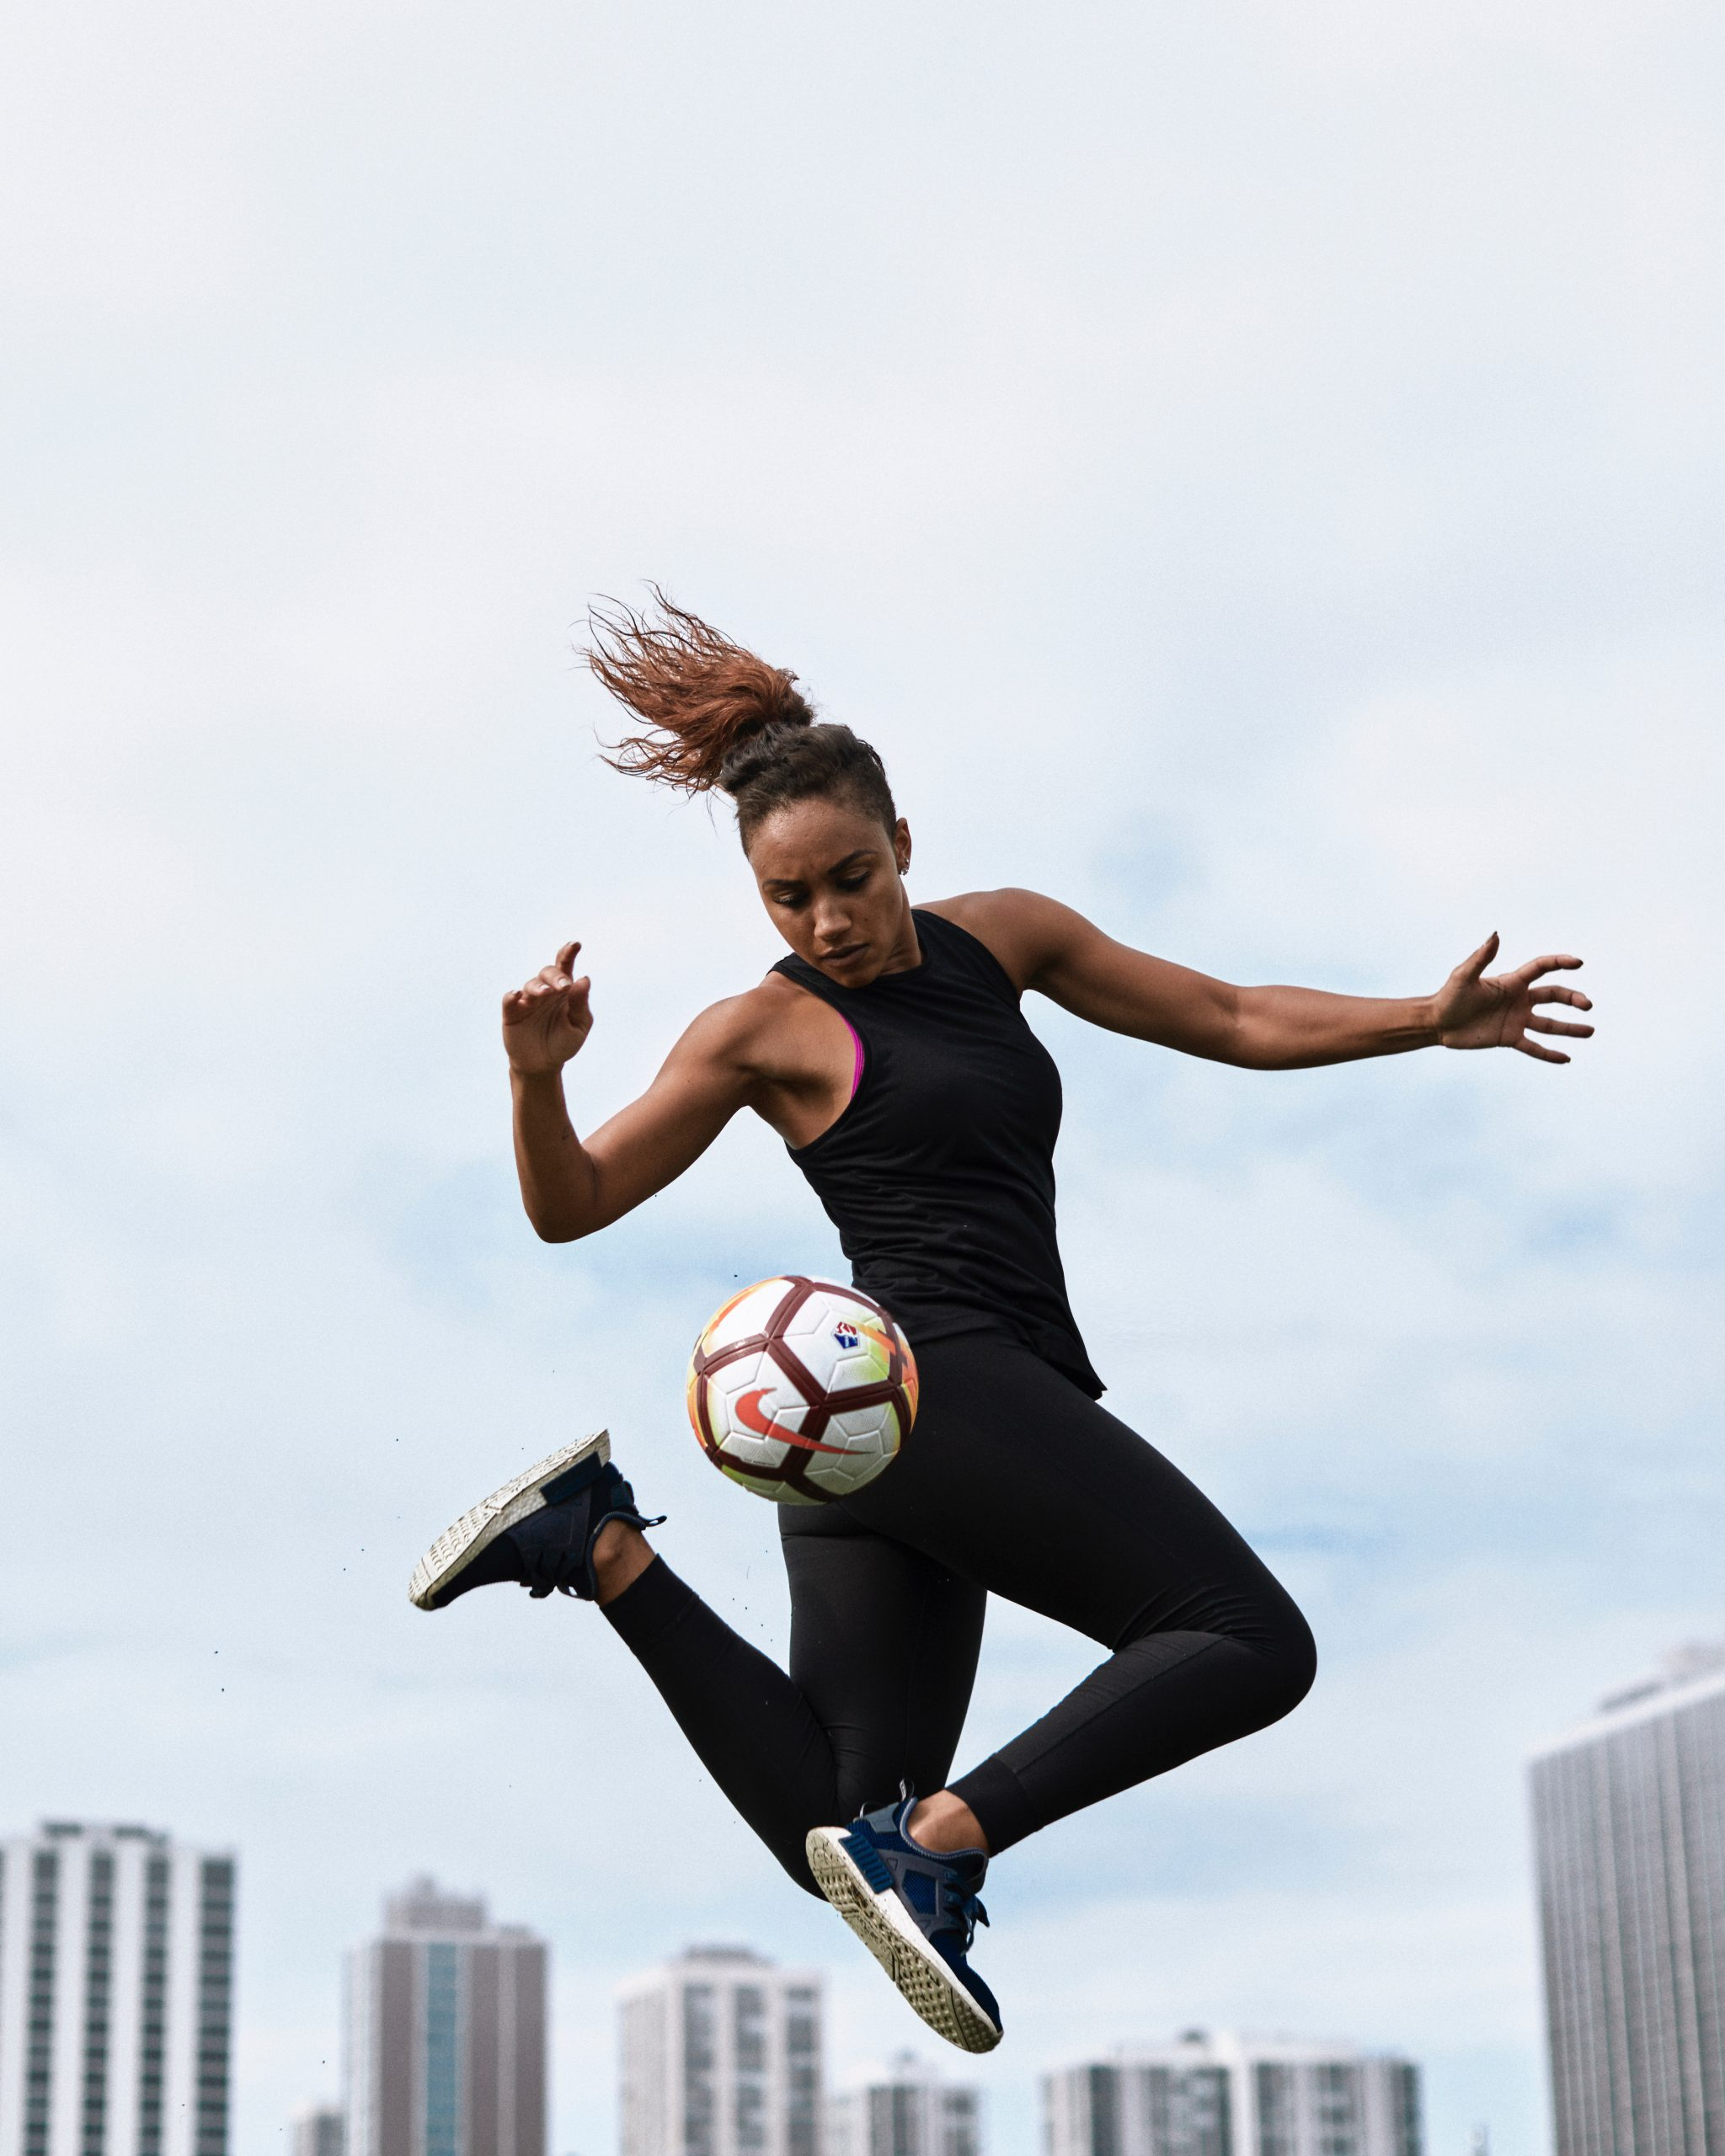 Samantha a professional soccer player performing ball tricks scaled